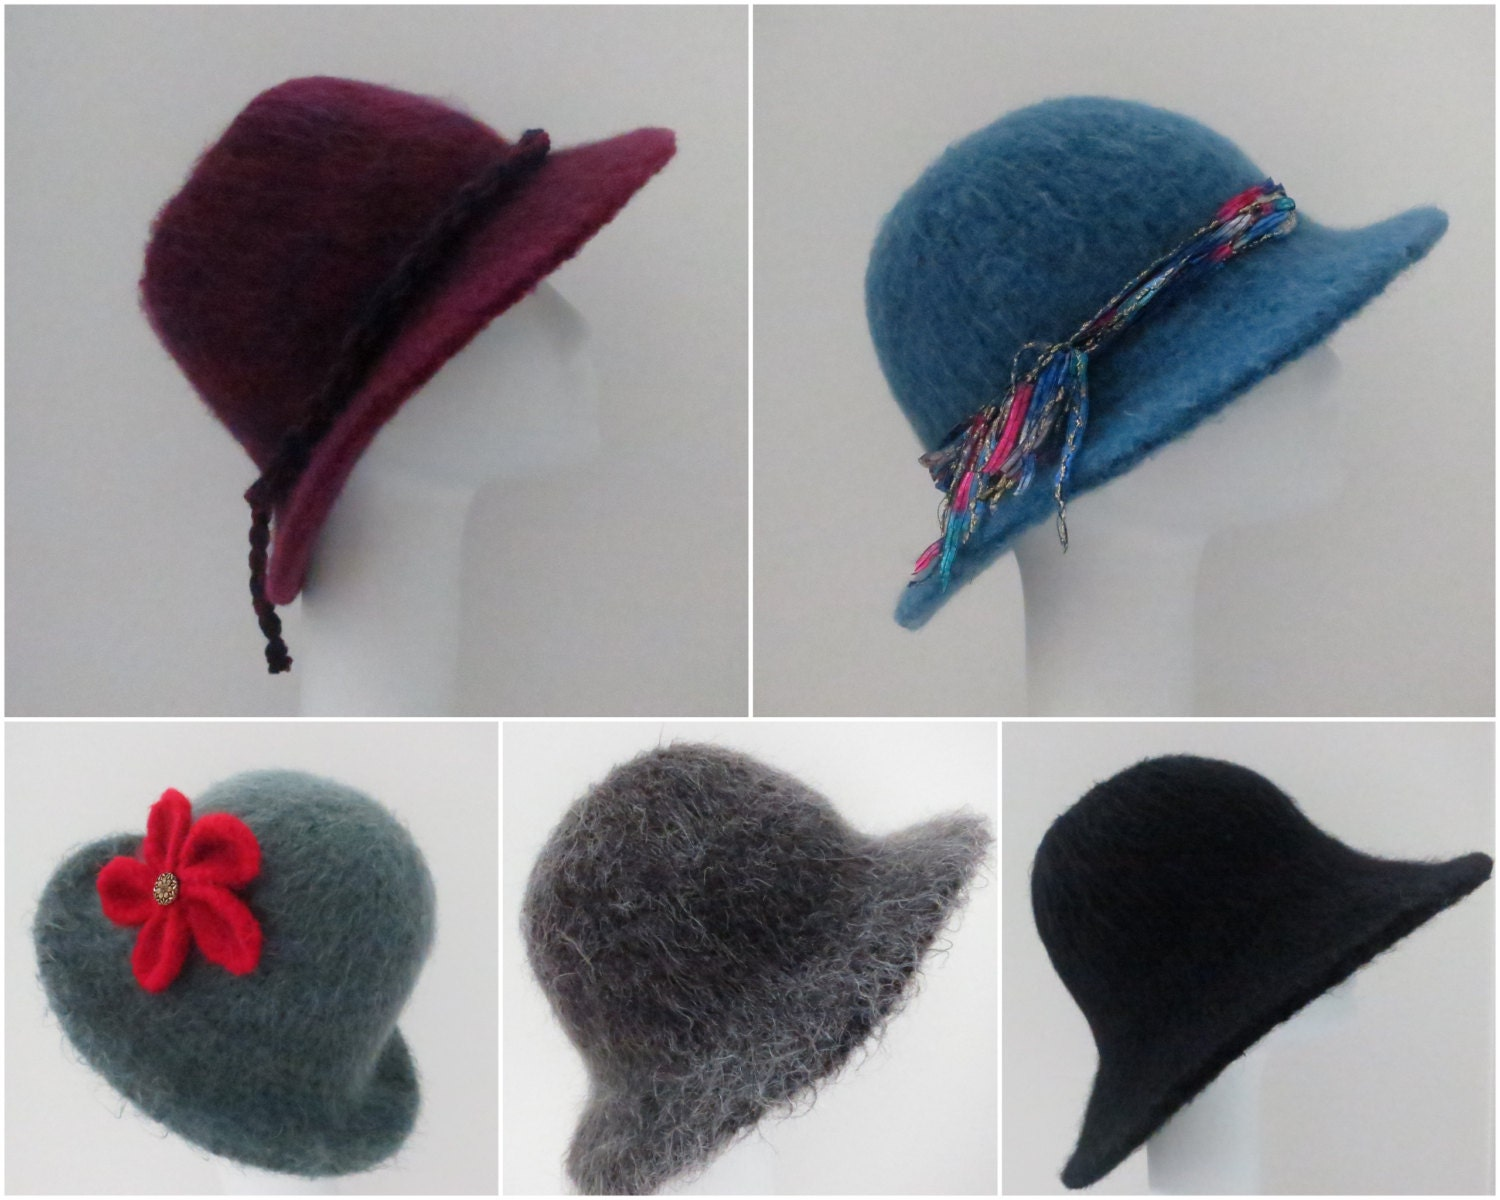 Four of my Felted Hat Patterns 205 Flat Brim Hat using